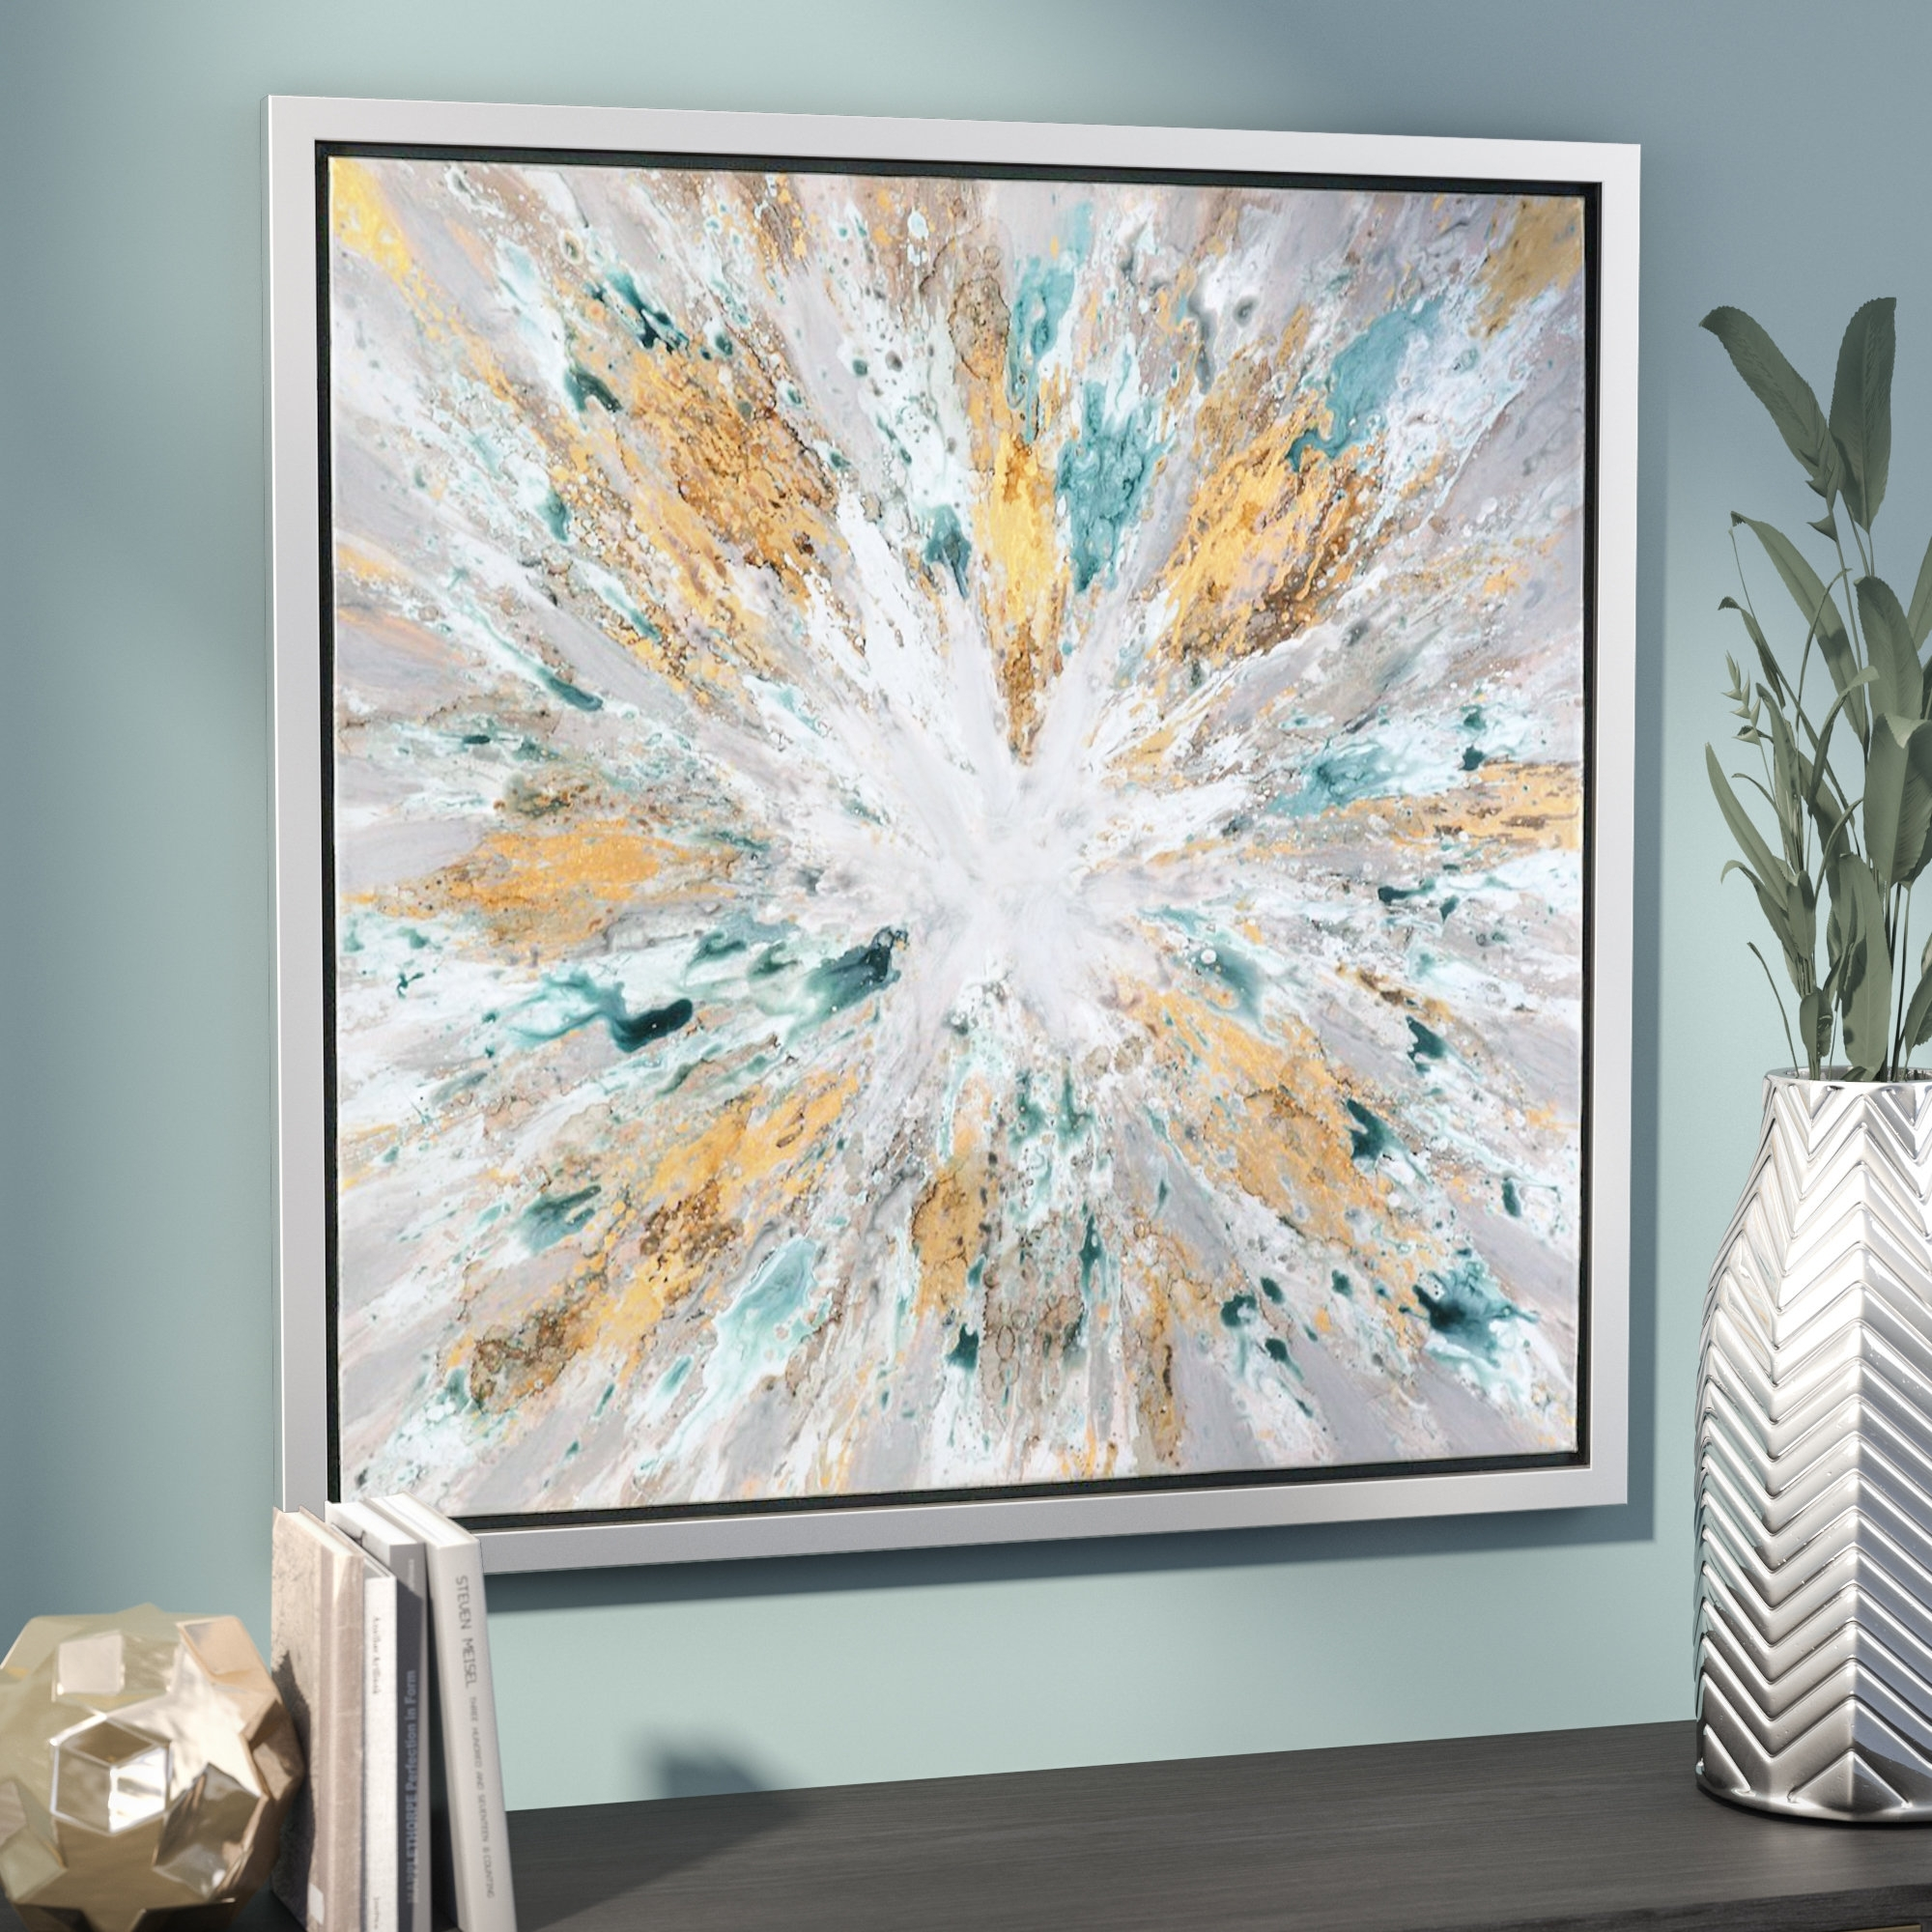 Willa Arlo Interiors 'exploding Star Modern' Abstract Framed Oil Intended For Most Recently Released Ottawa Abstract Wall Art (Gallery 12 of 20)